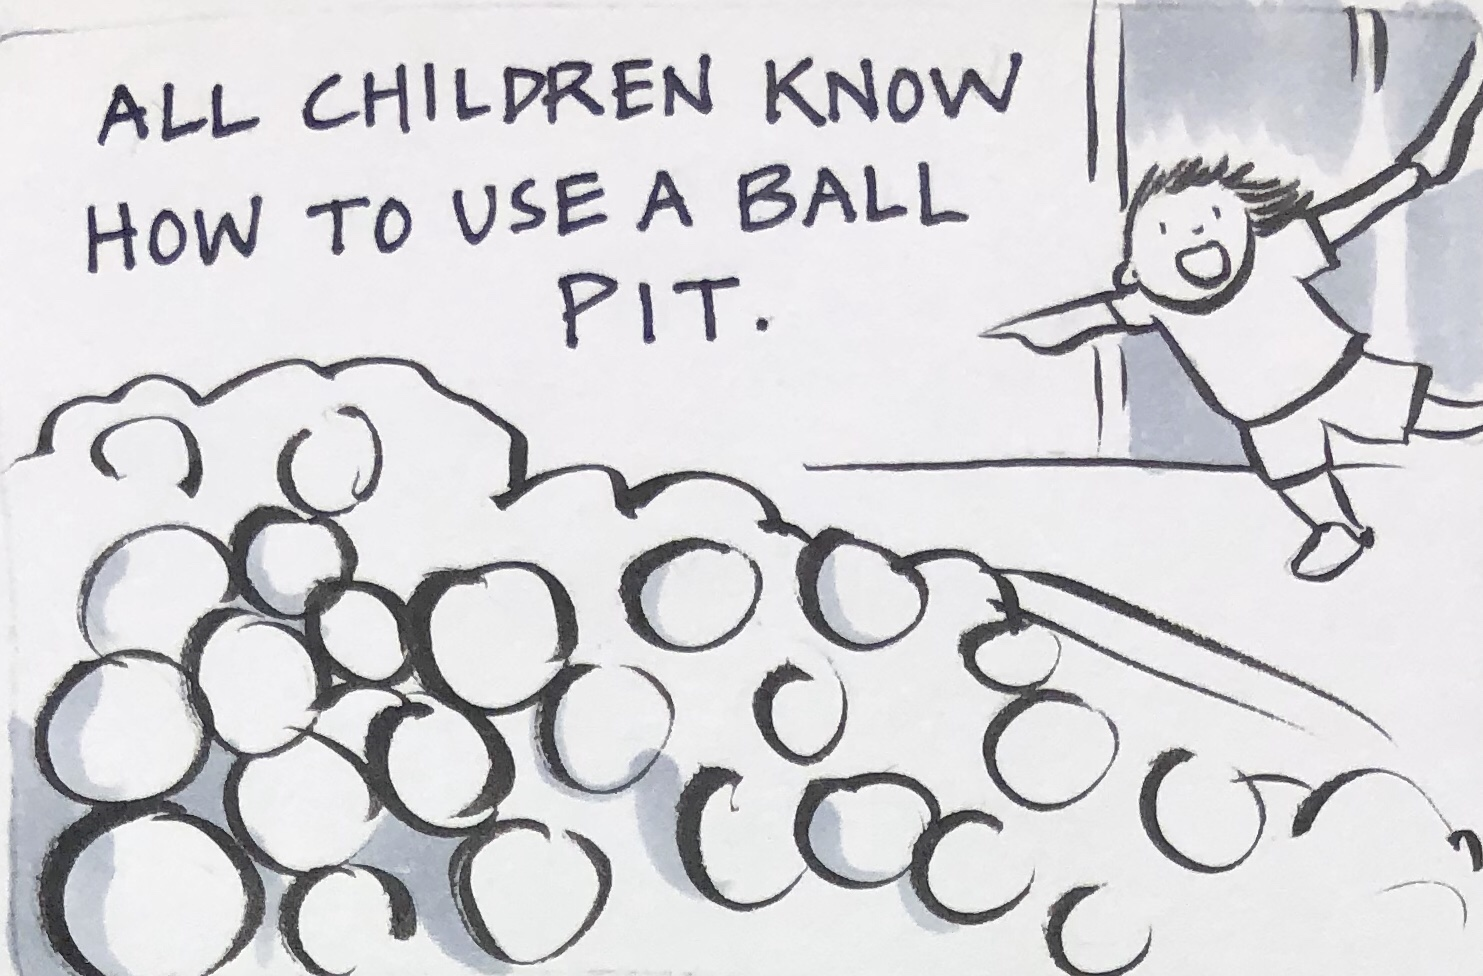 Child going to ball pit Carmen Wood art illustration comic art graphic novel Minneapolis